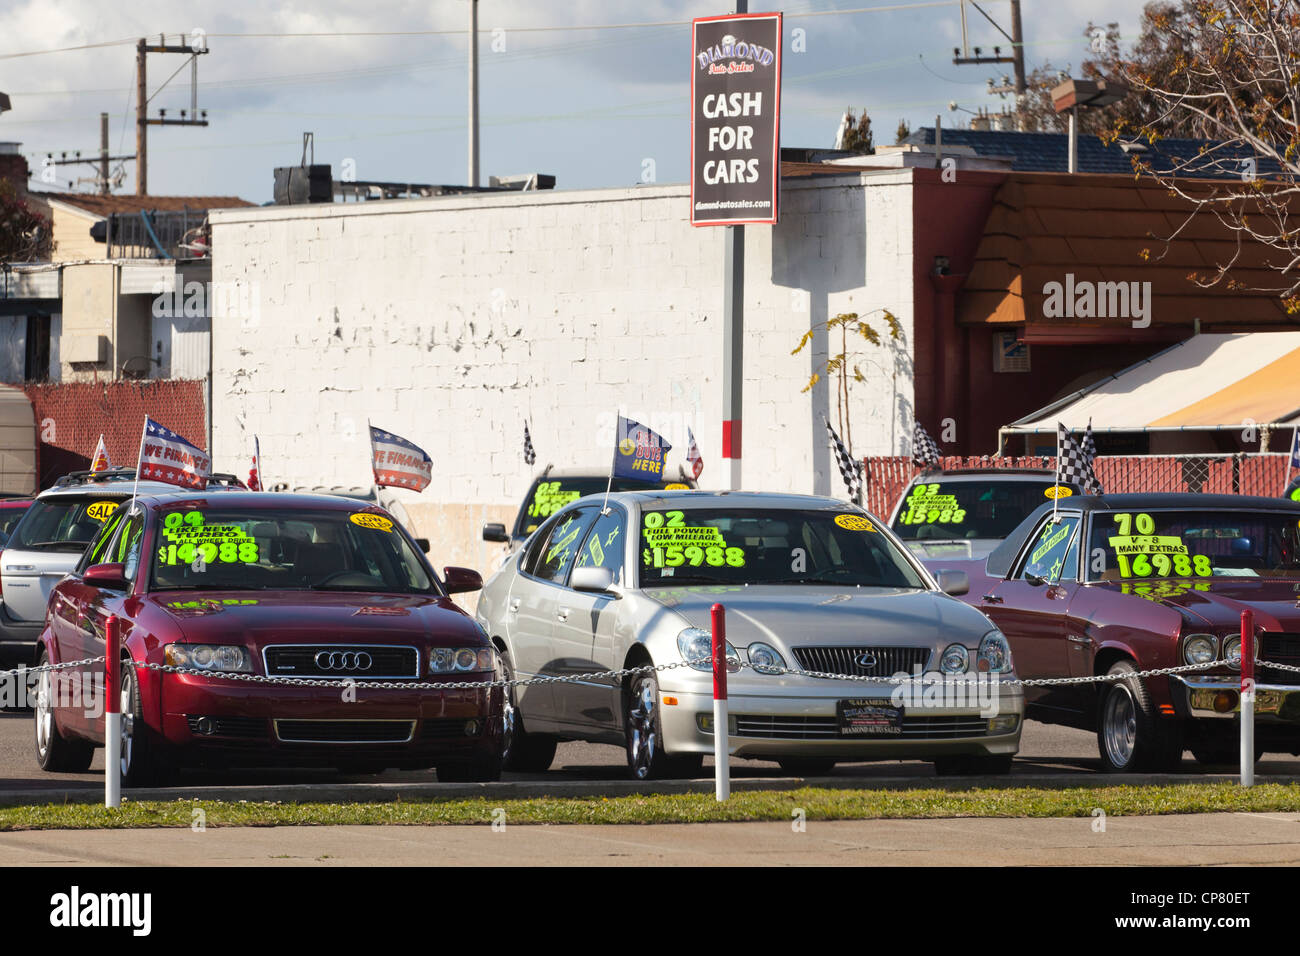 Used Cars For Sale Usa Stock Photos & Used Cars For Sale Usa Stock ...